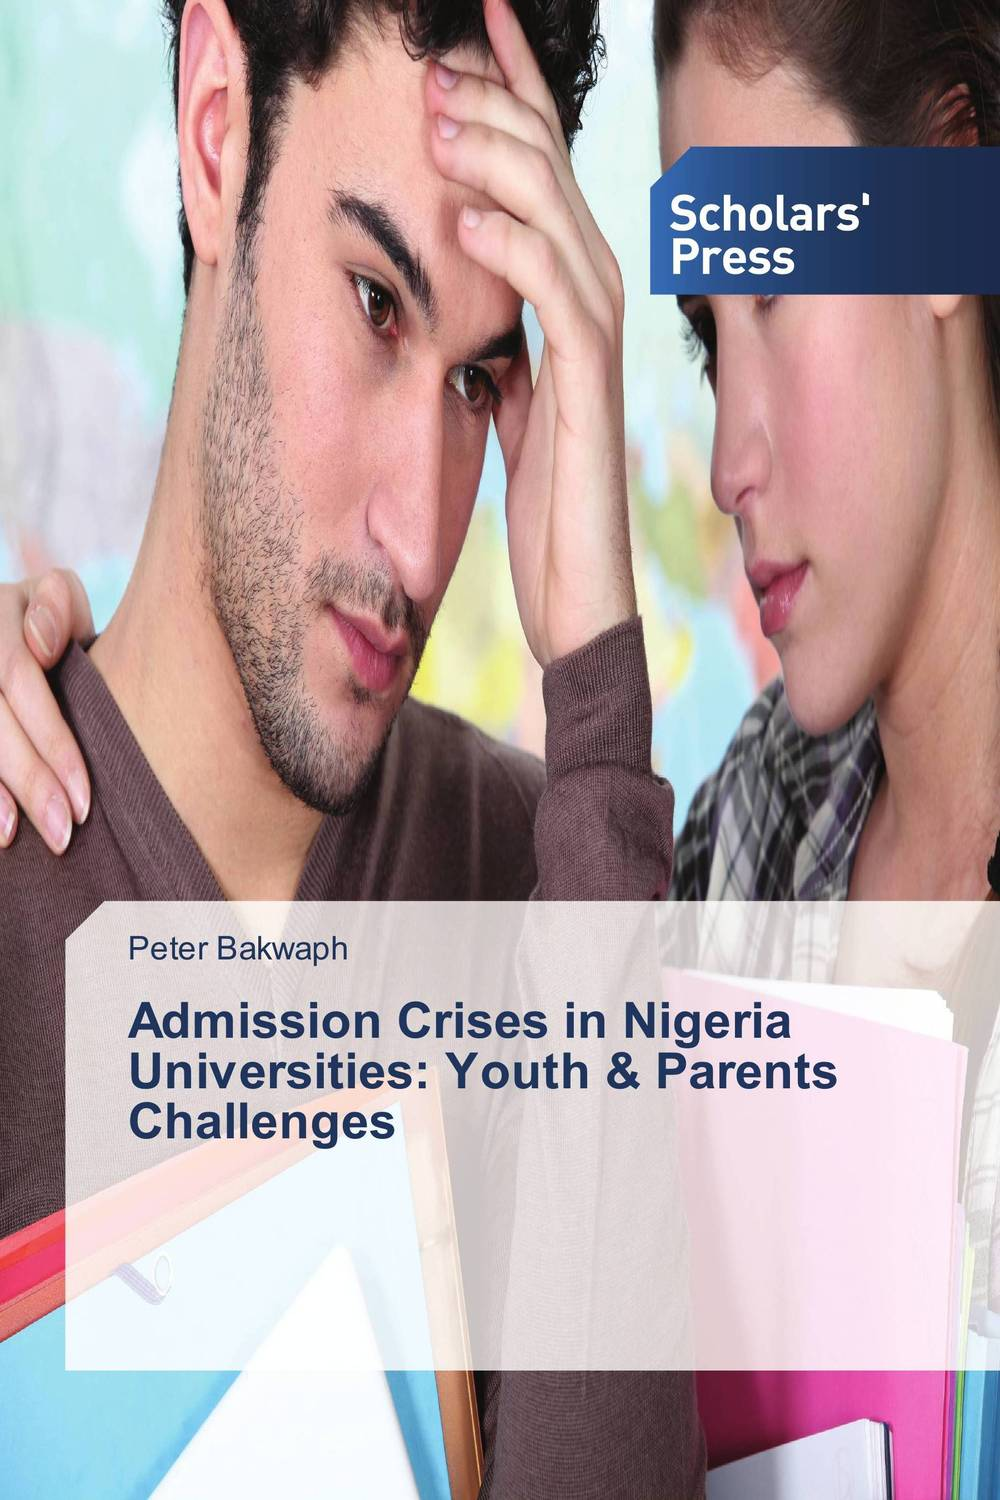 Admission Crises in Nigeria Universities: Youth & Parents Challenges